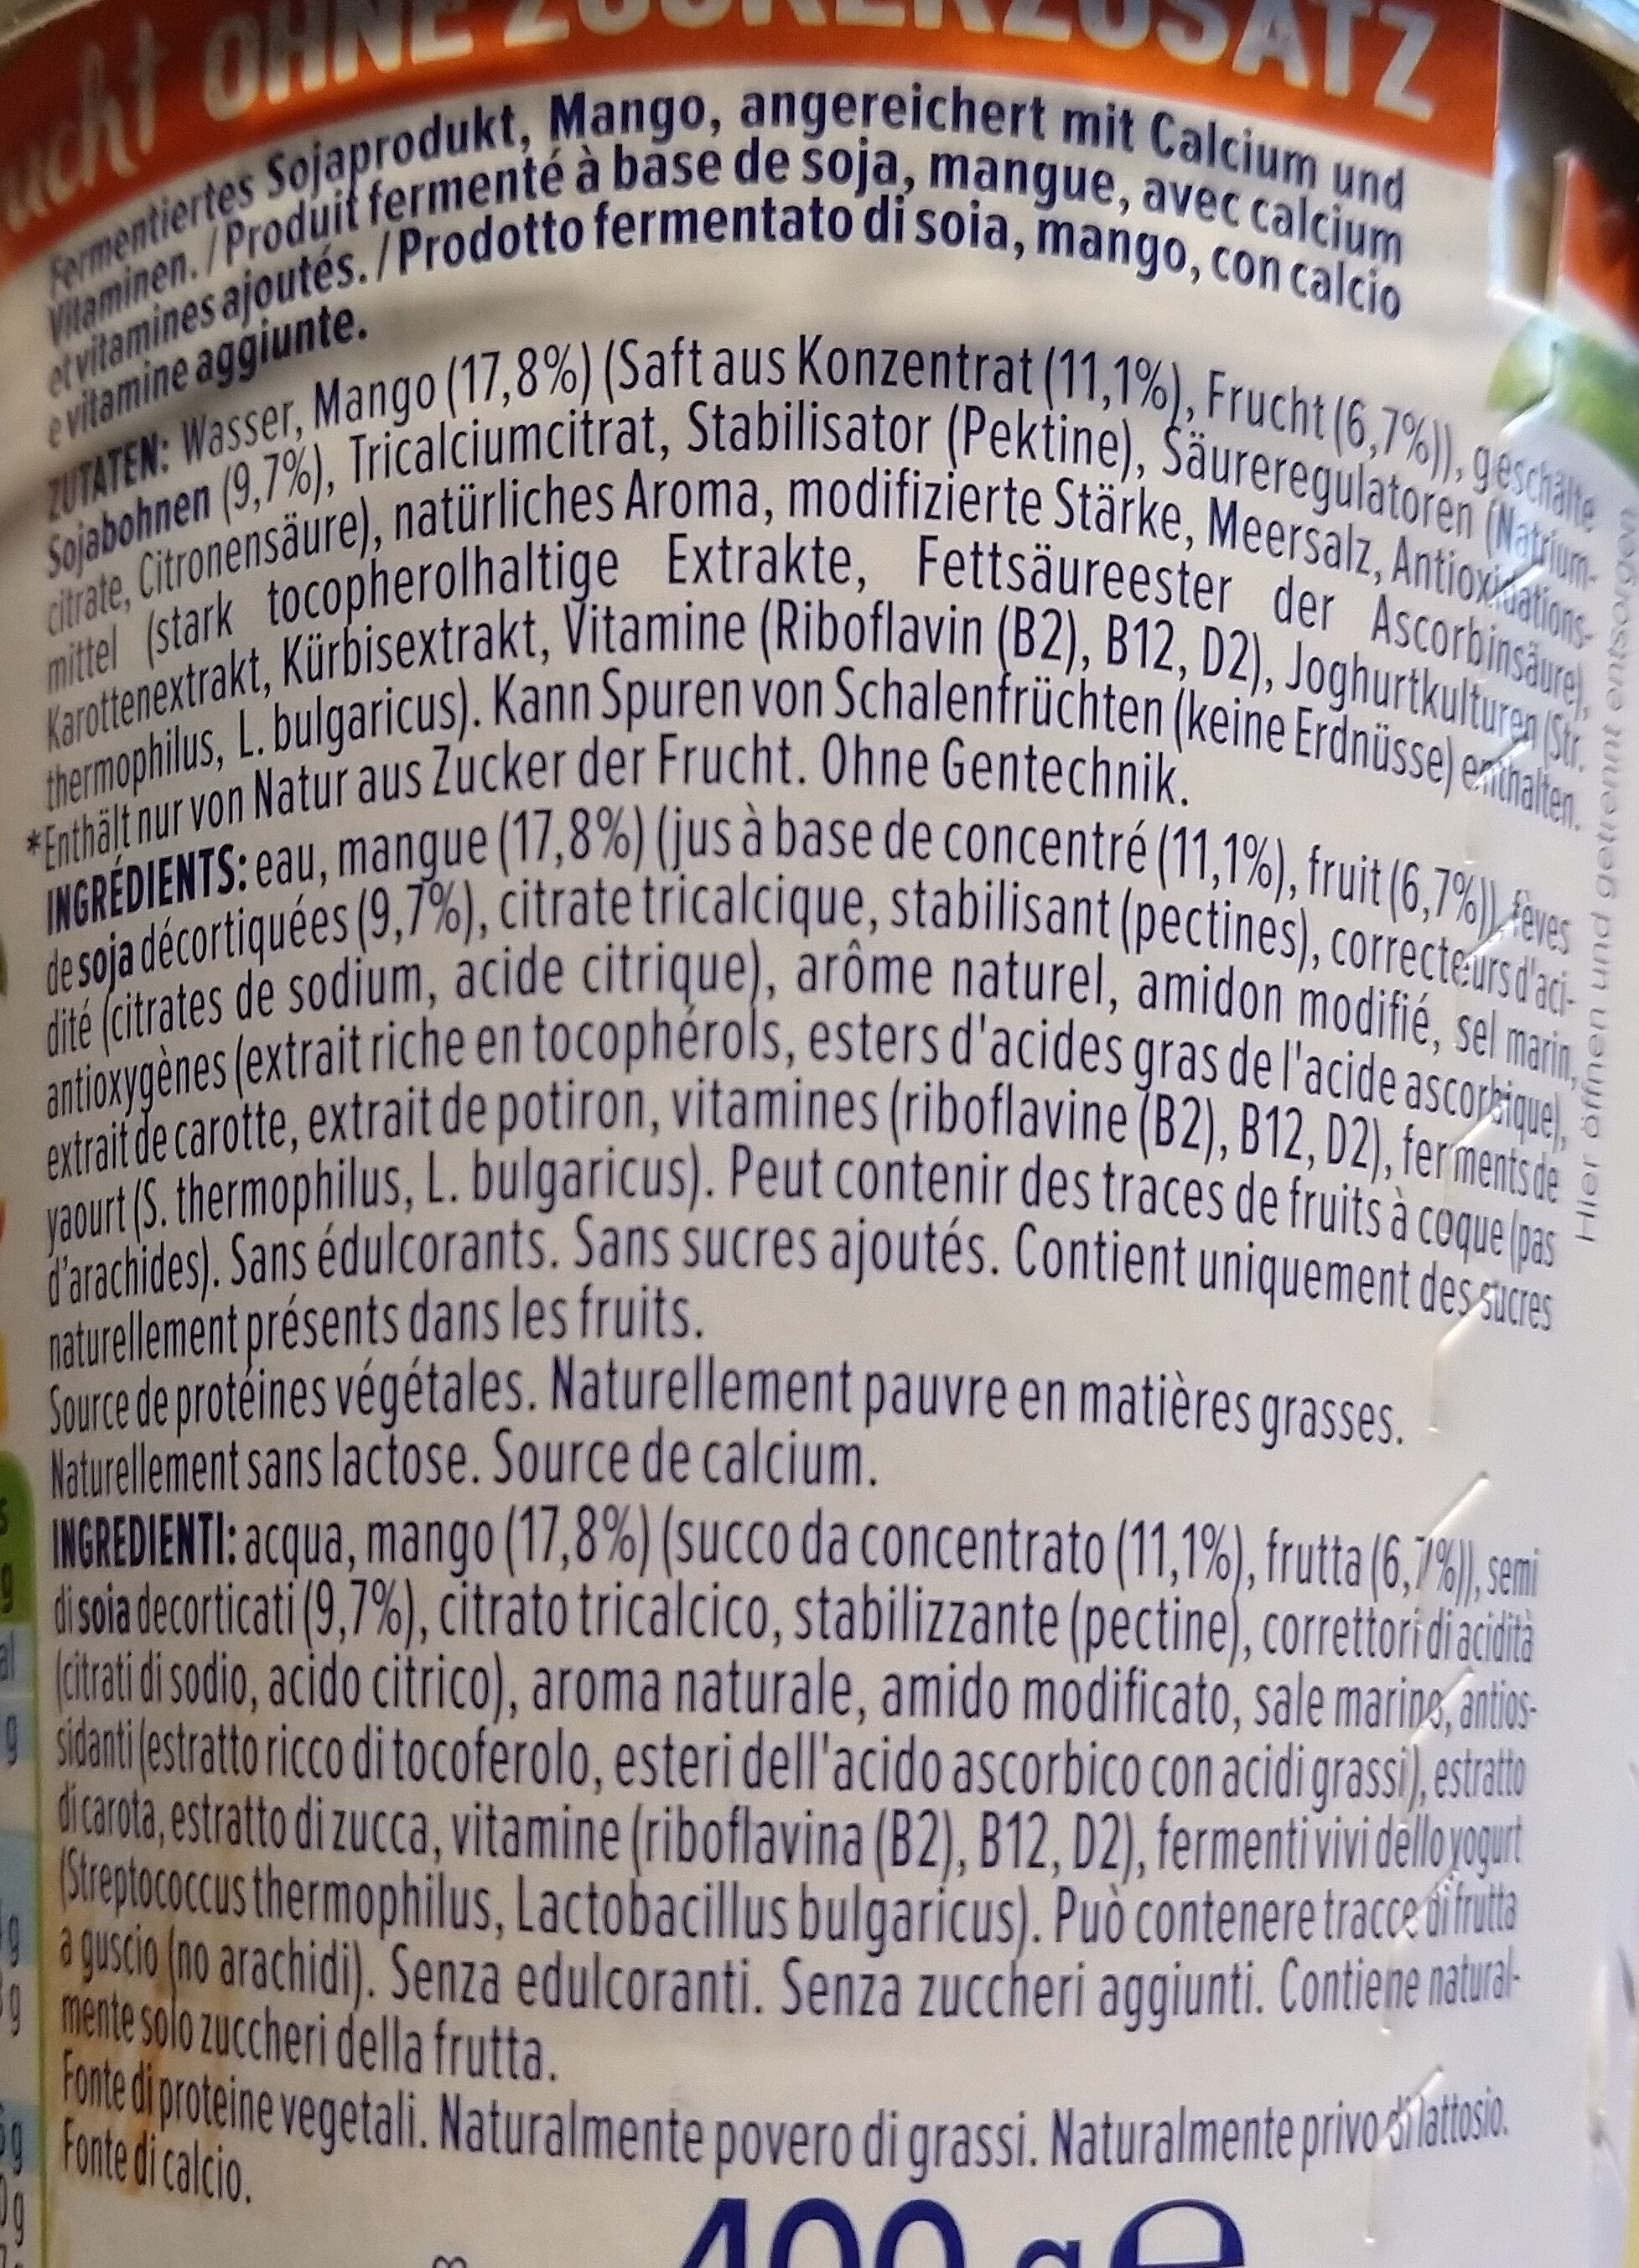 Alpro Pfirsich - Ingredients - en